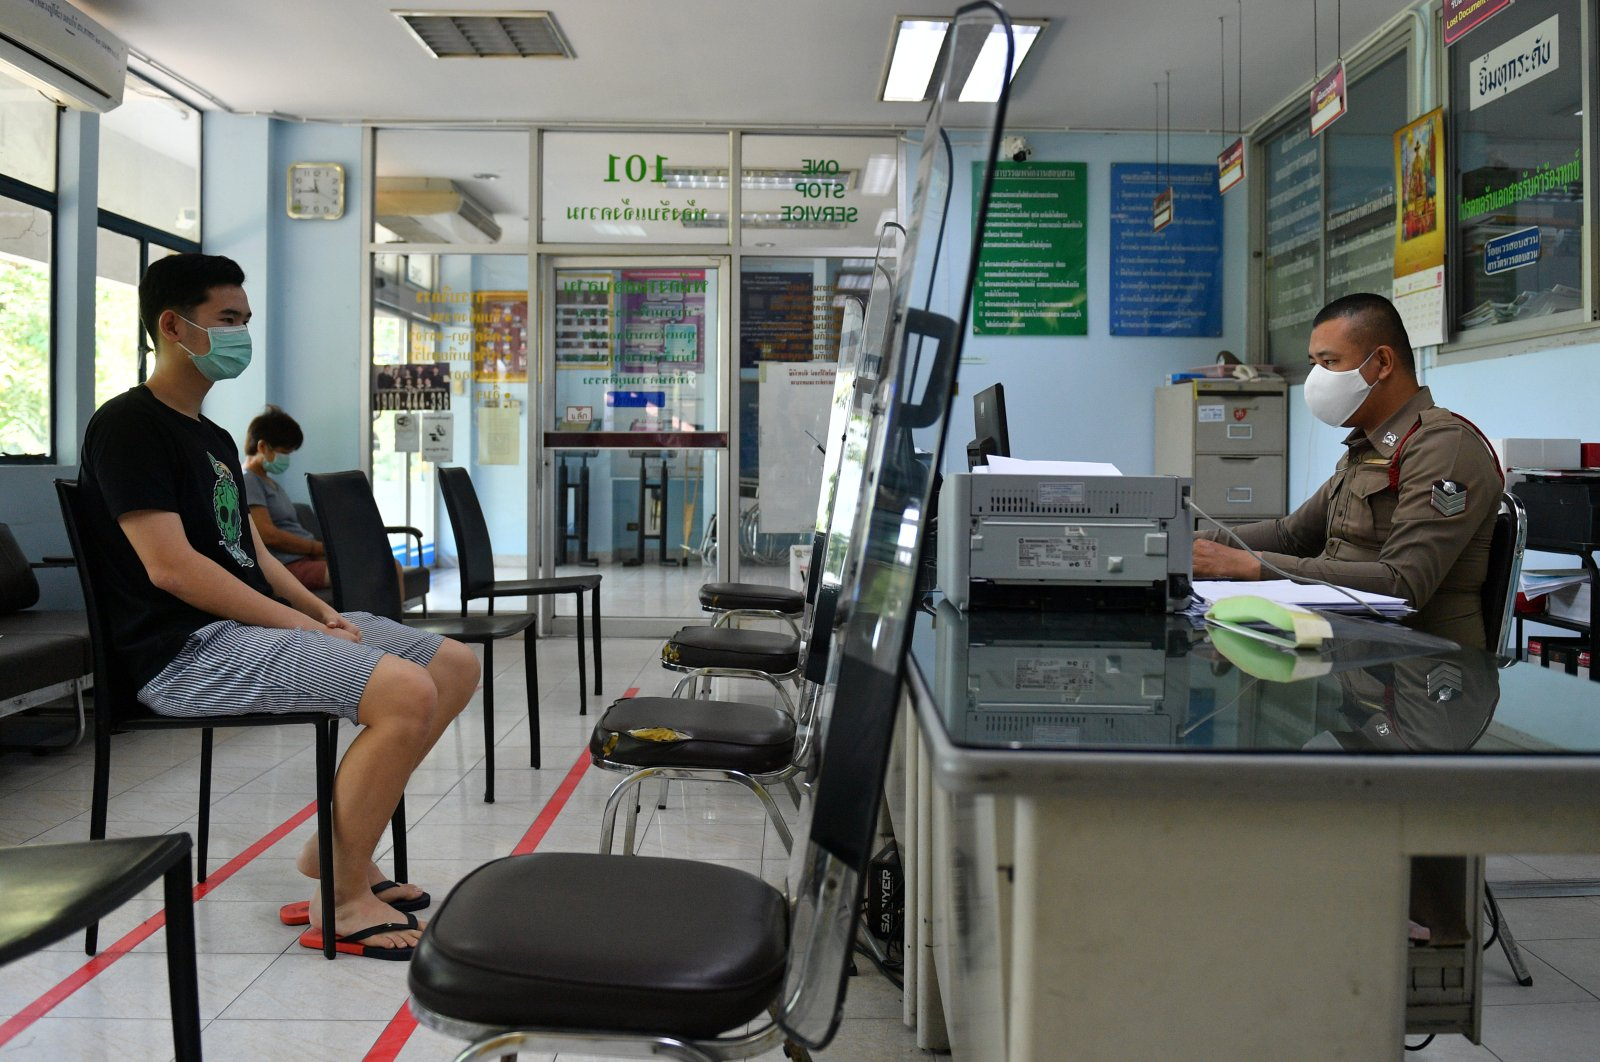 Citizens and police officers wearing protective face masks due to the coronavirus disease (COVID-19) outbreak keep social distance at a police station in Bangkok, Thailand, March 28, 2020. (Reuters Photo)